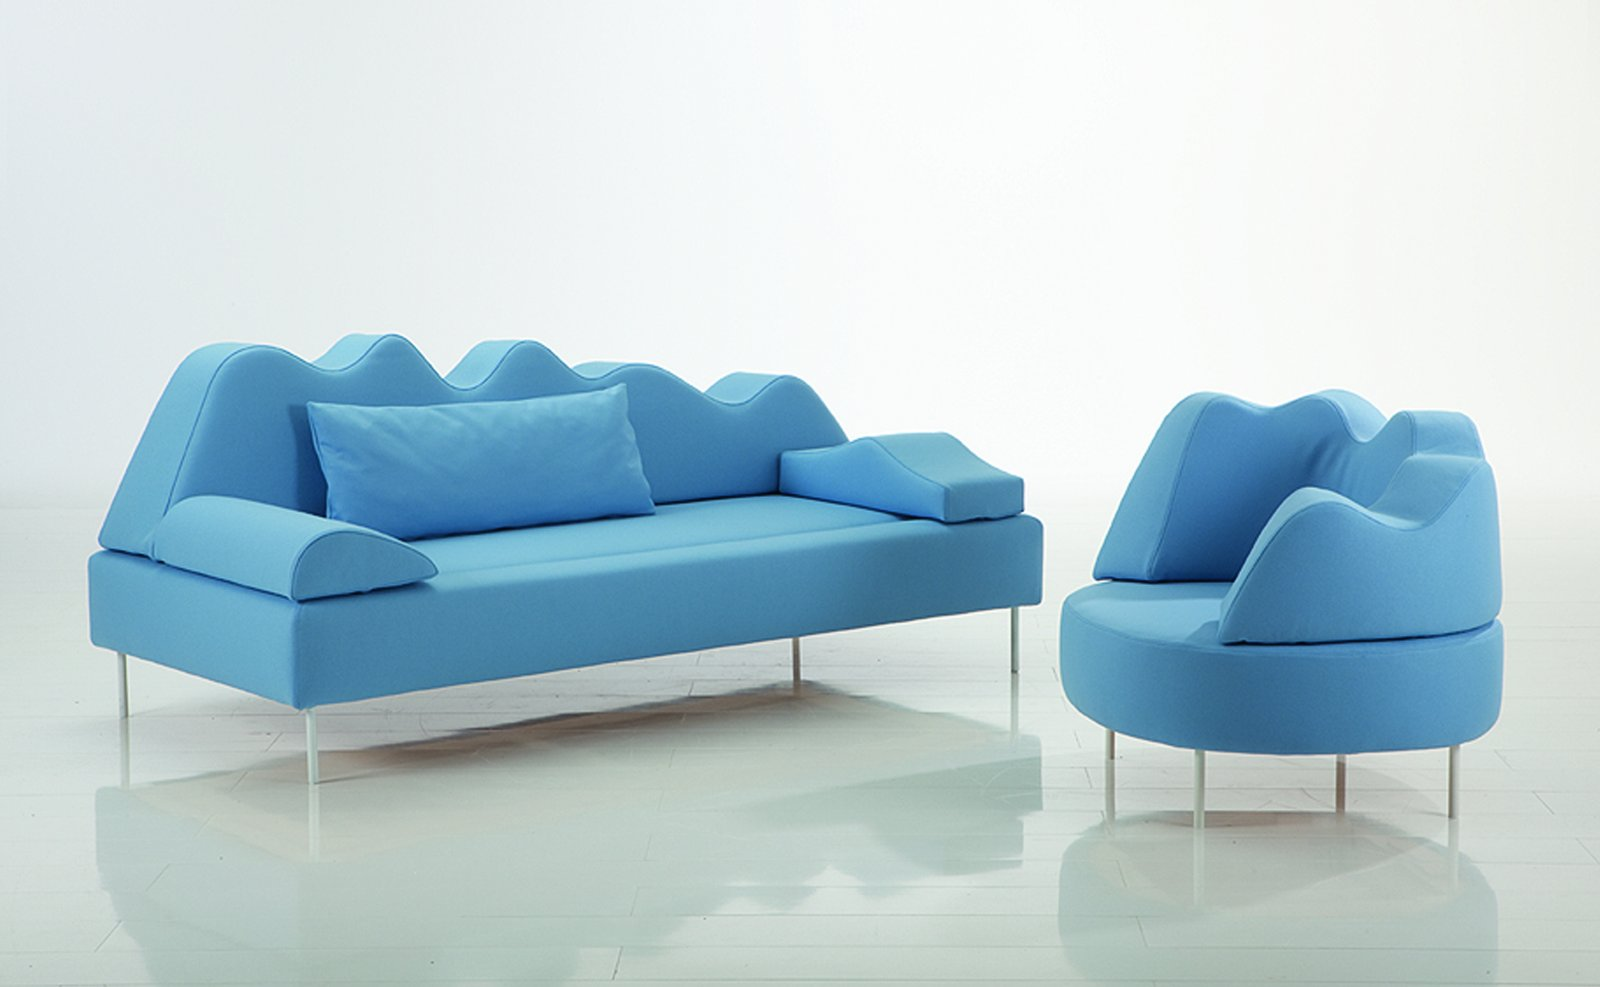 Design Attack Sessel Sofa Sessel Kombination B S Sofa Sessel Kombination